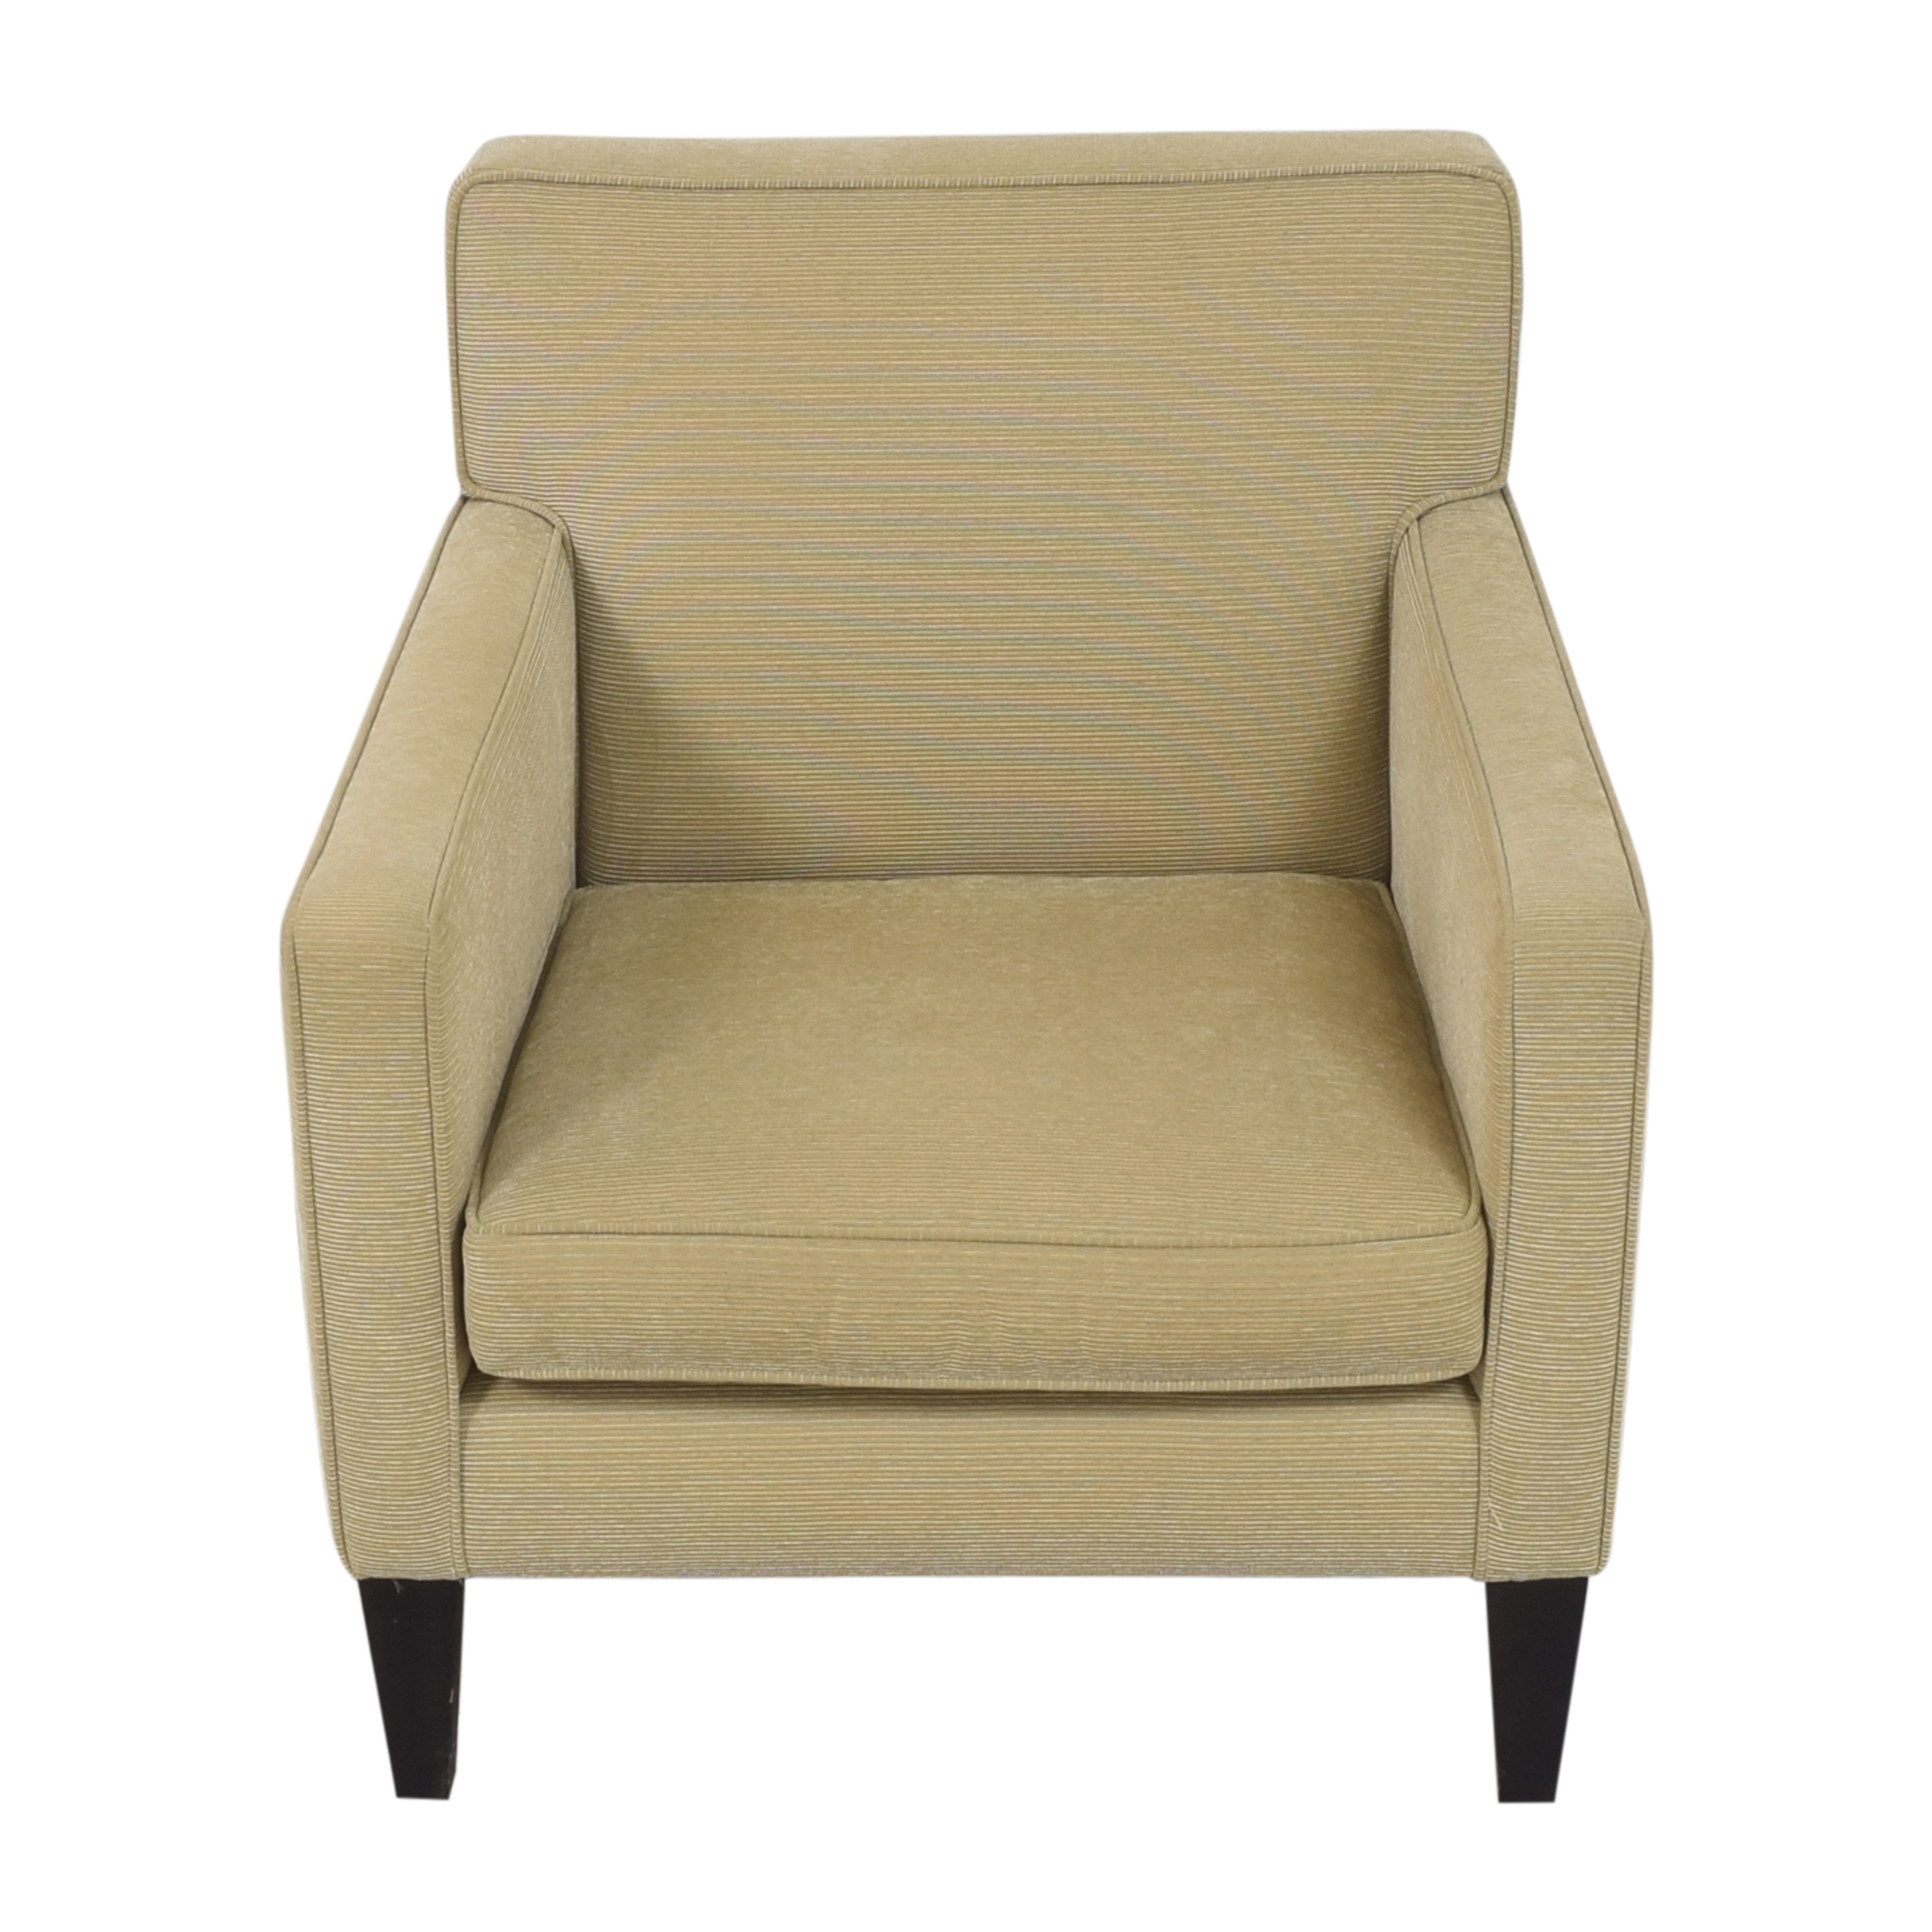 shop Crate & Barrel Tight Back Accent Chair Crate & Barrel Accent Chairs